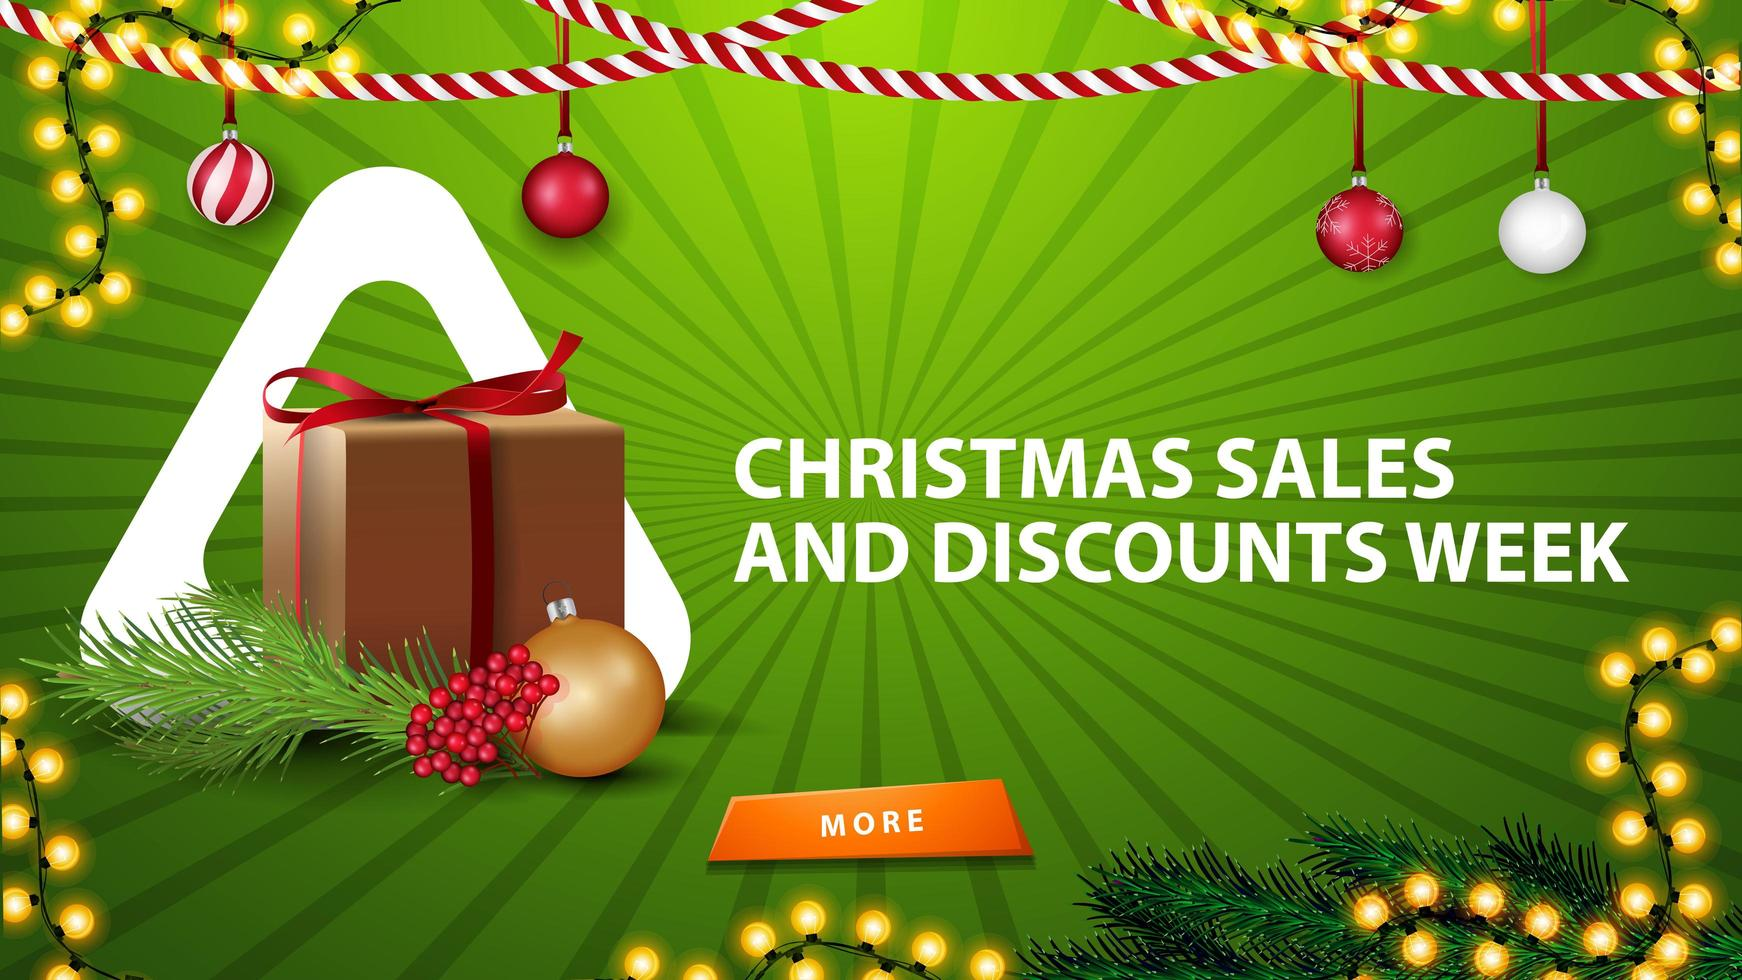 Christmas sales and discount week, green horizontal banner for website with Christmas decor, gift and Christmas tree branch vector